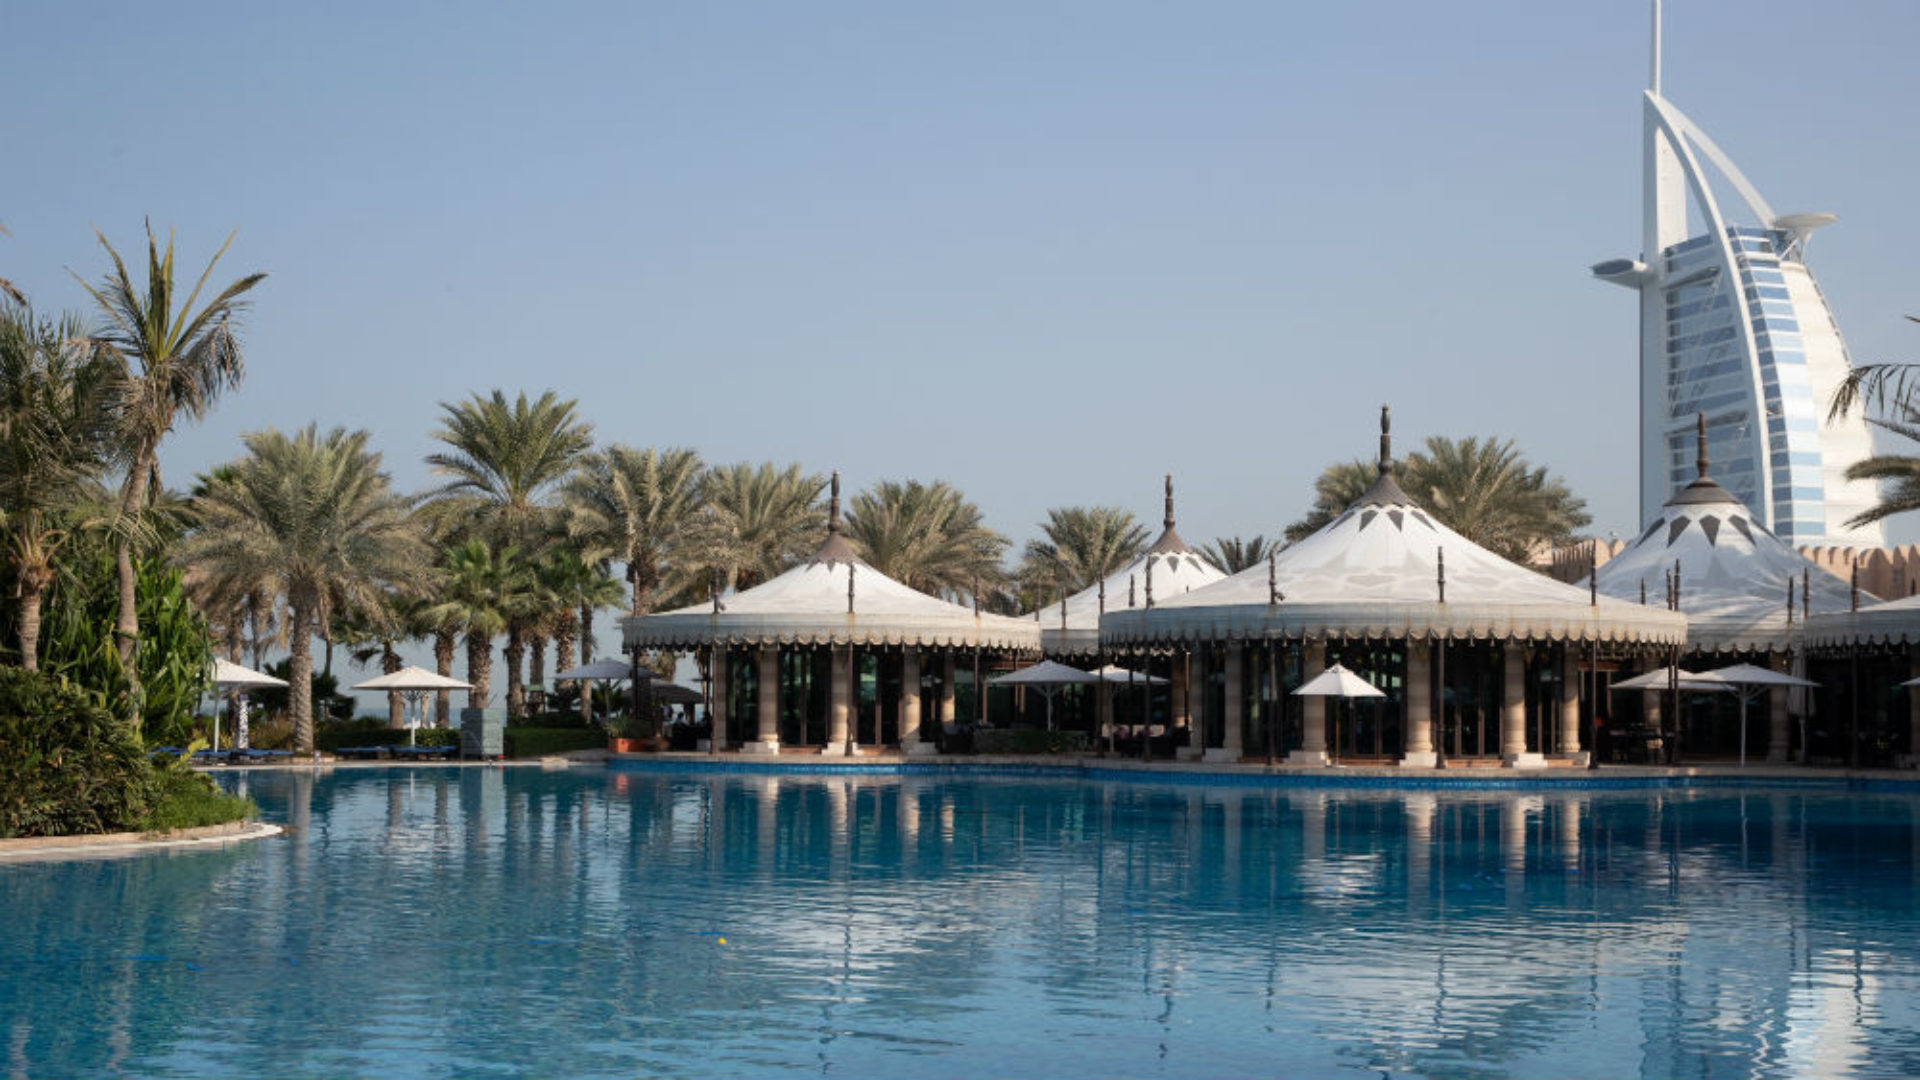 Main Pool at the Jumeirah Al Qasr